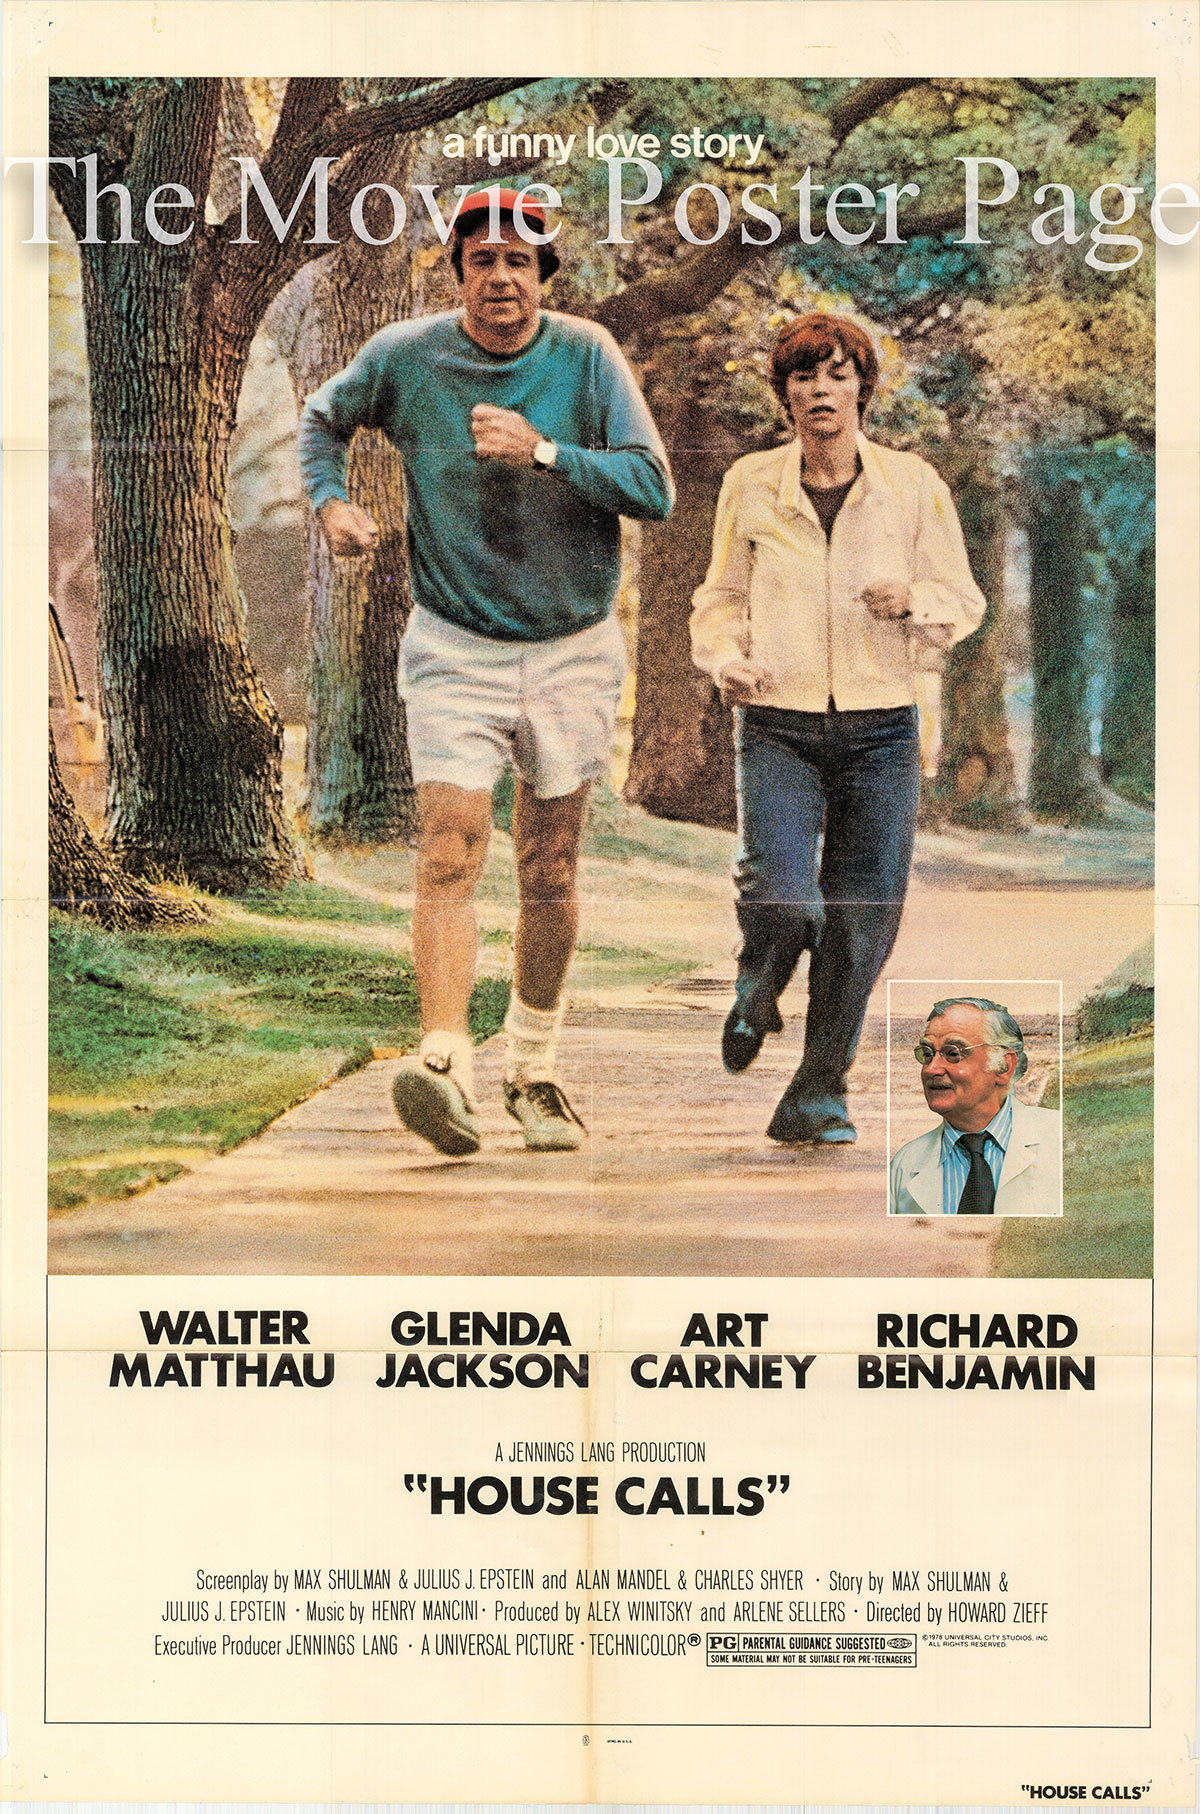 Pictured is a US one-sheet promotional poster for the 1978 Howard Zieff film House Calls starring Walter Matthau.